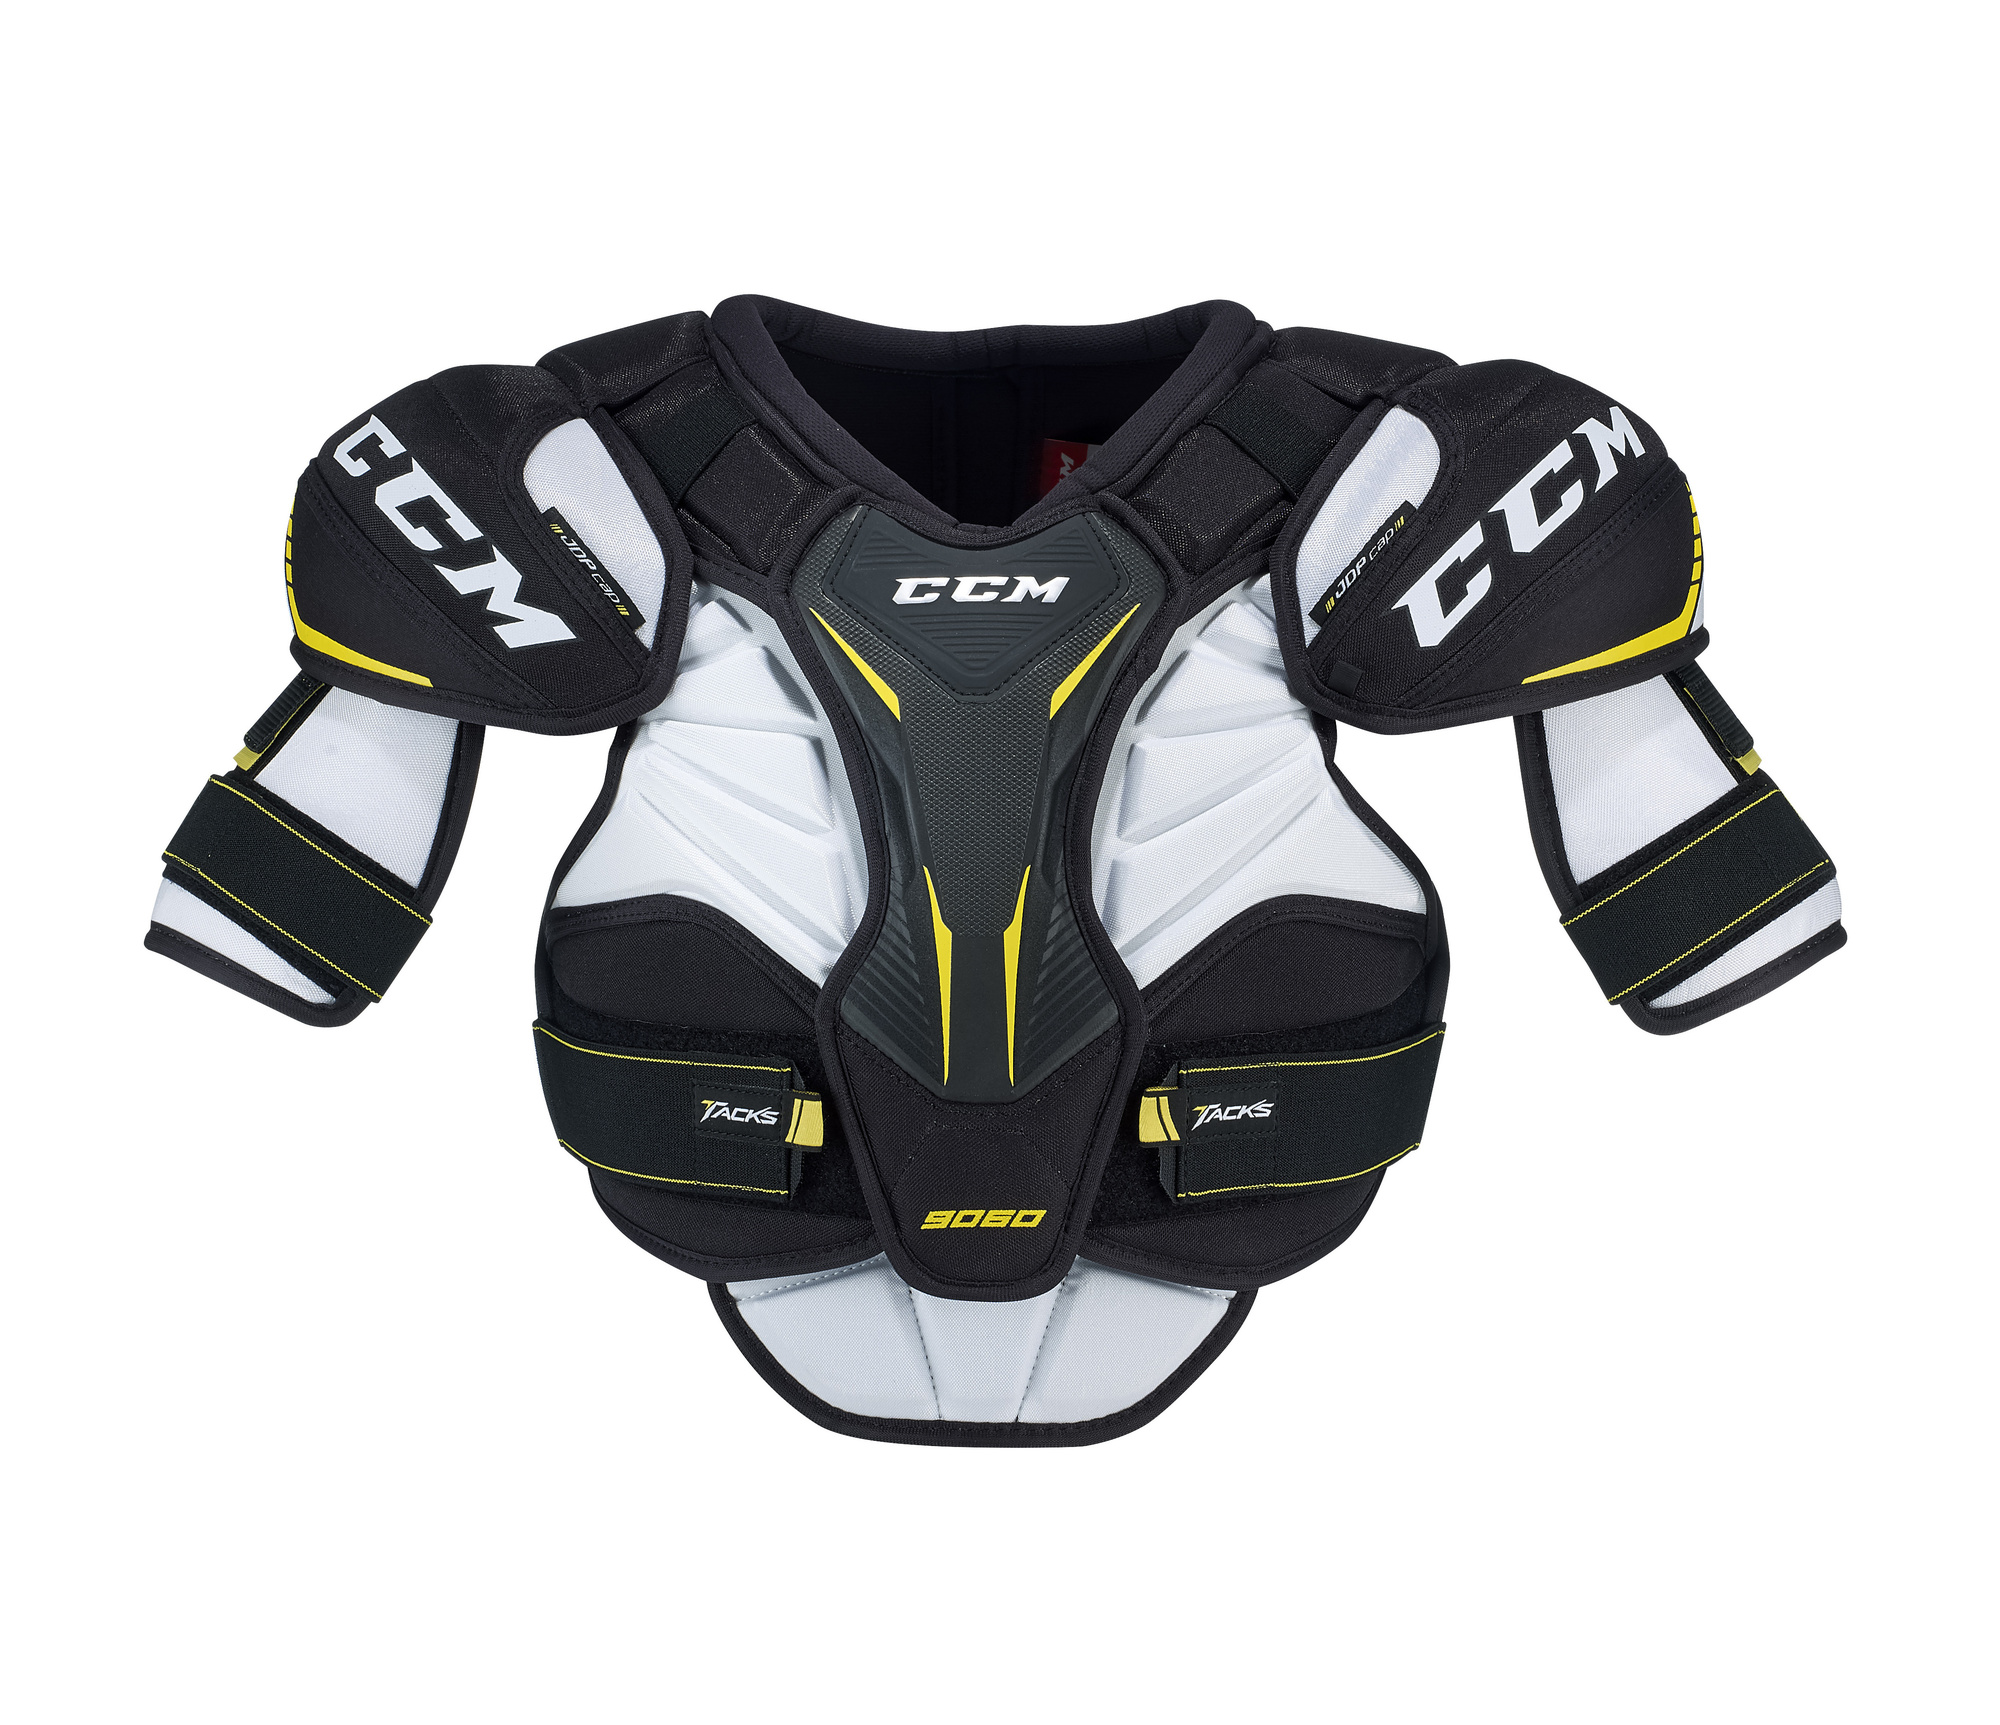 Ramena CCM Tacks 9060 JR, Junior, L